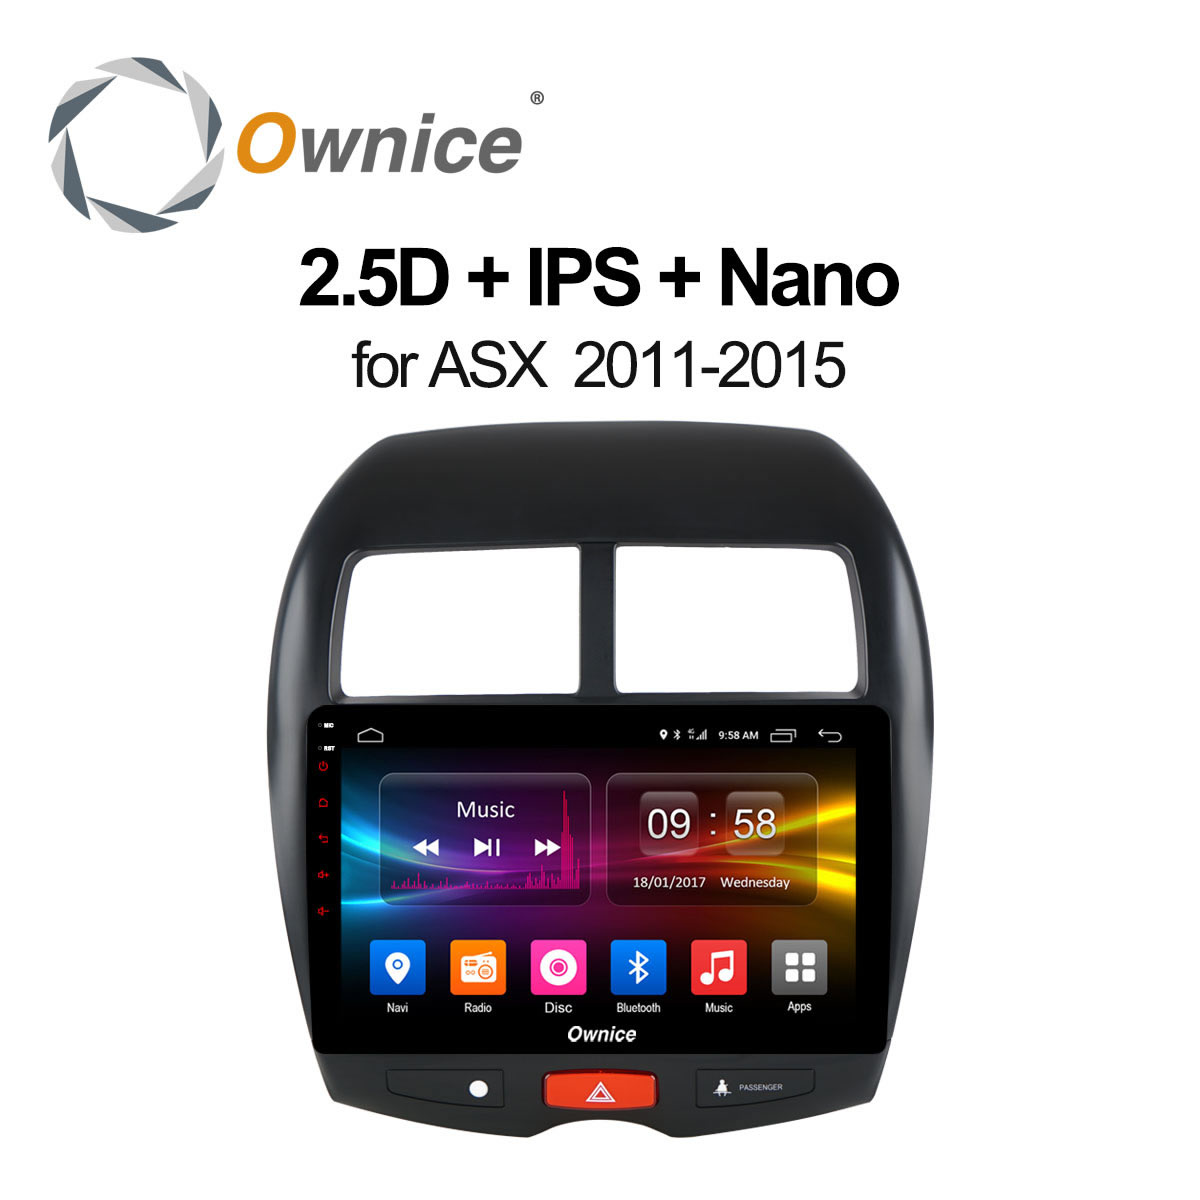 Ownice C500 + 10.1 octa base Android 6.0 Autoradio lecteur GPS 32 GB ROM pour Mitsubishi ASX 2011 2012 2013 2014 2015 DVD 4G DAB +